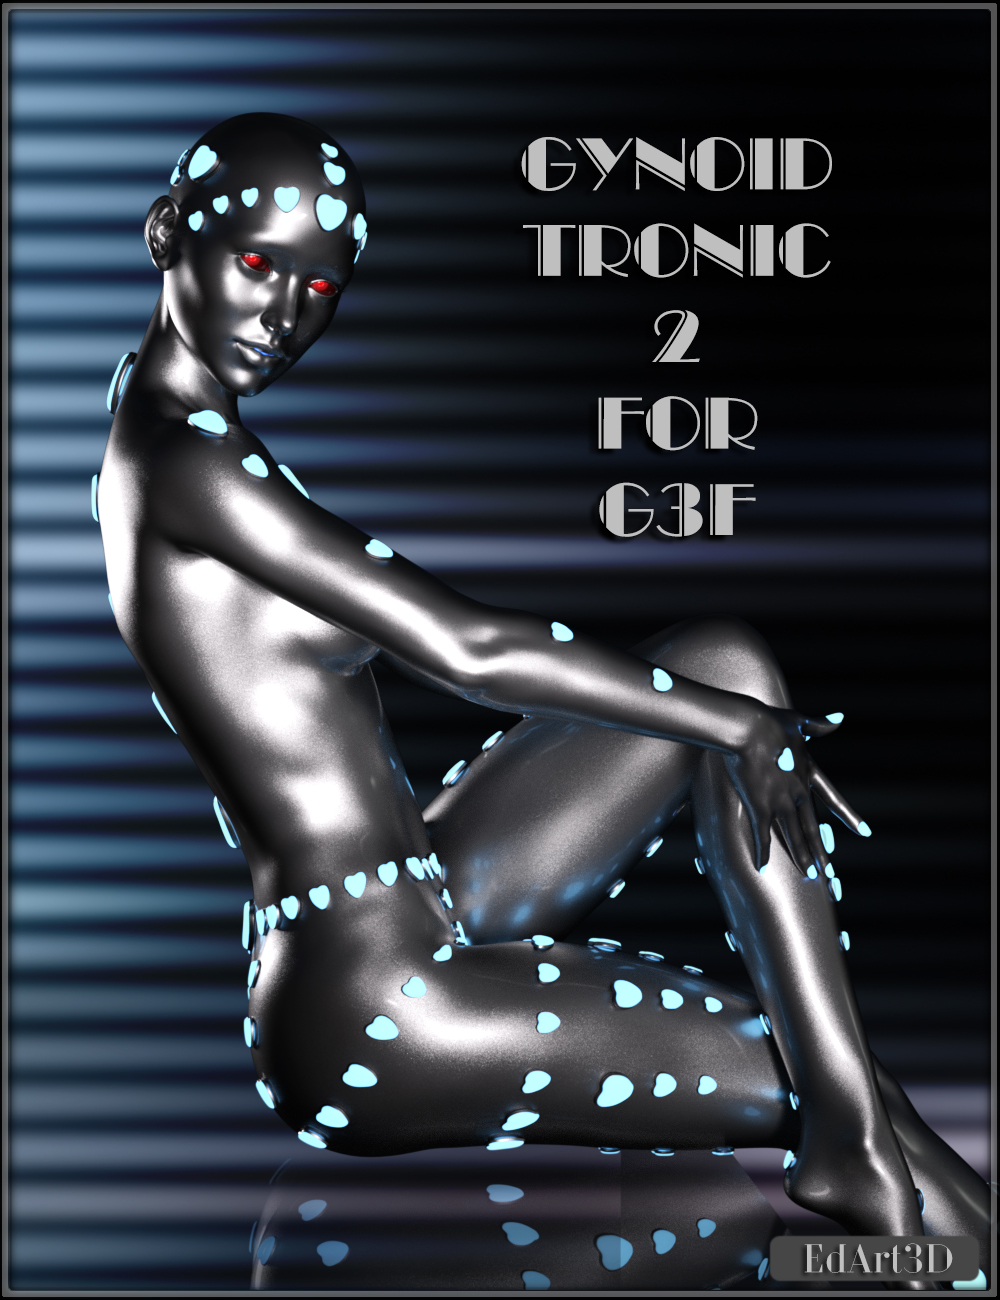 Gynoid_Tronic 2 for G3F